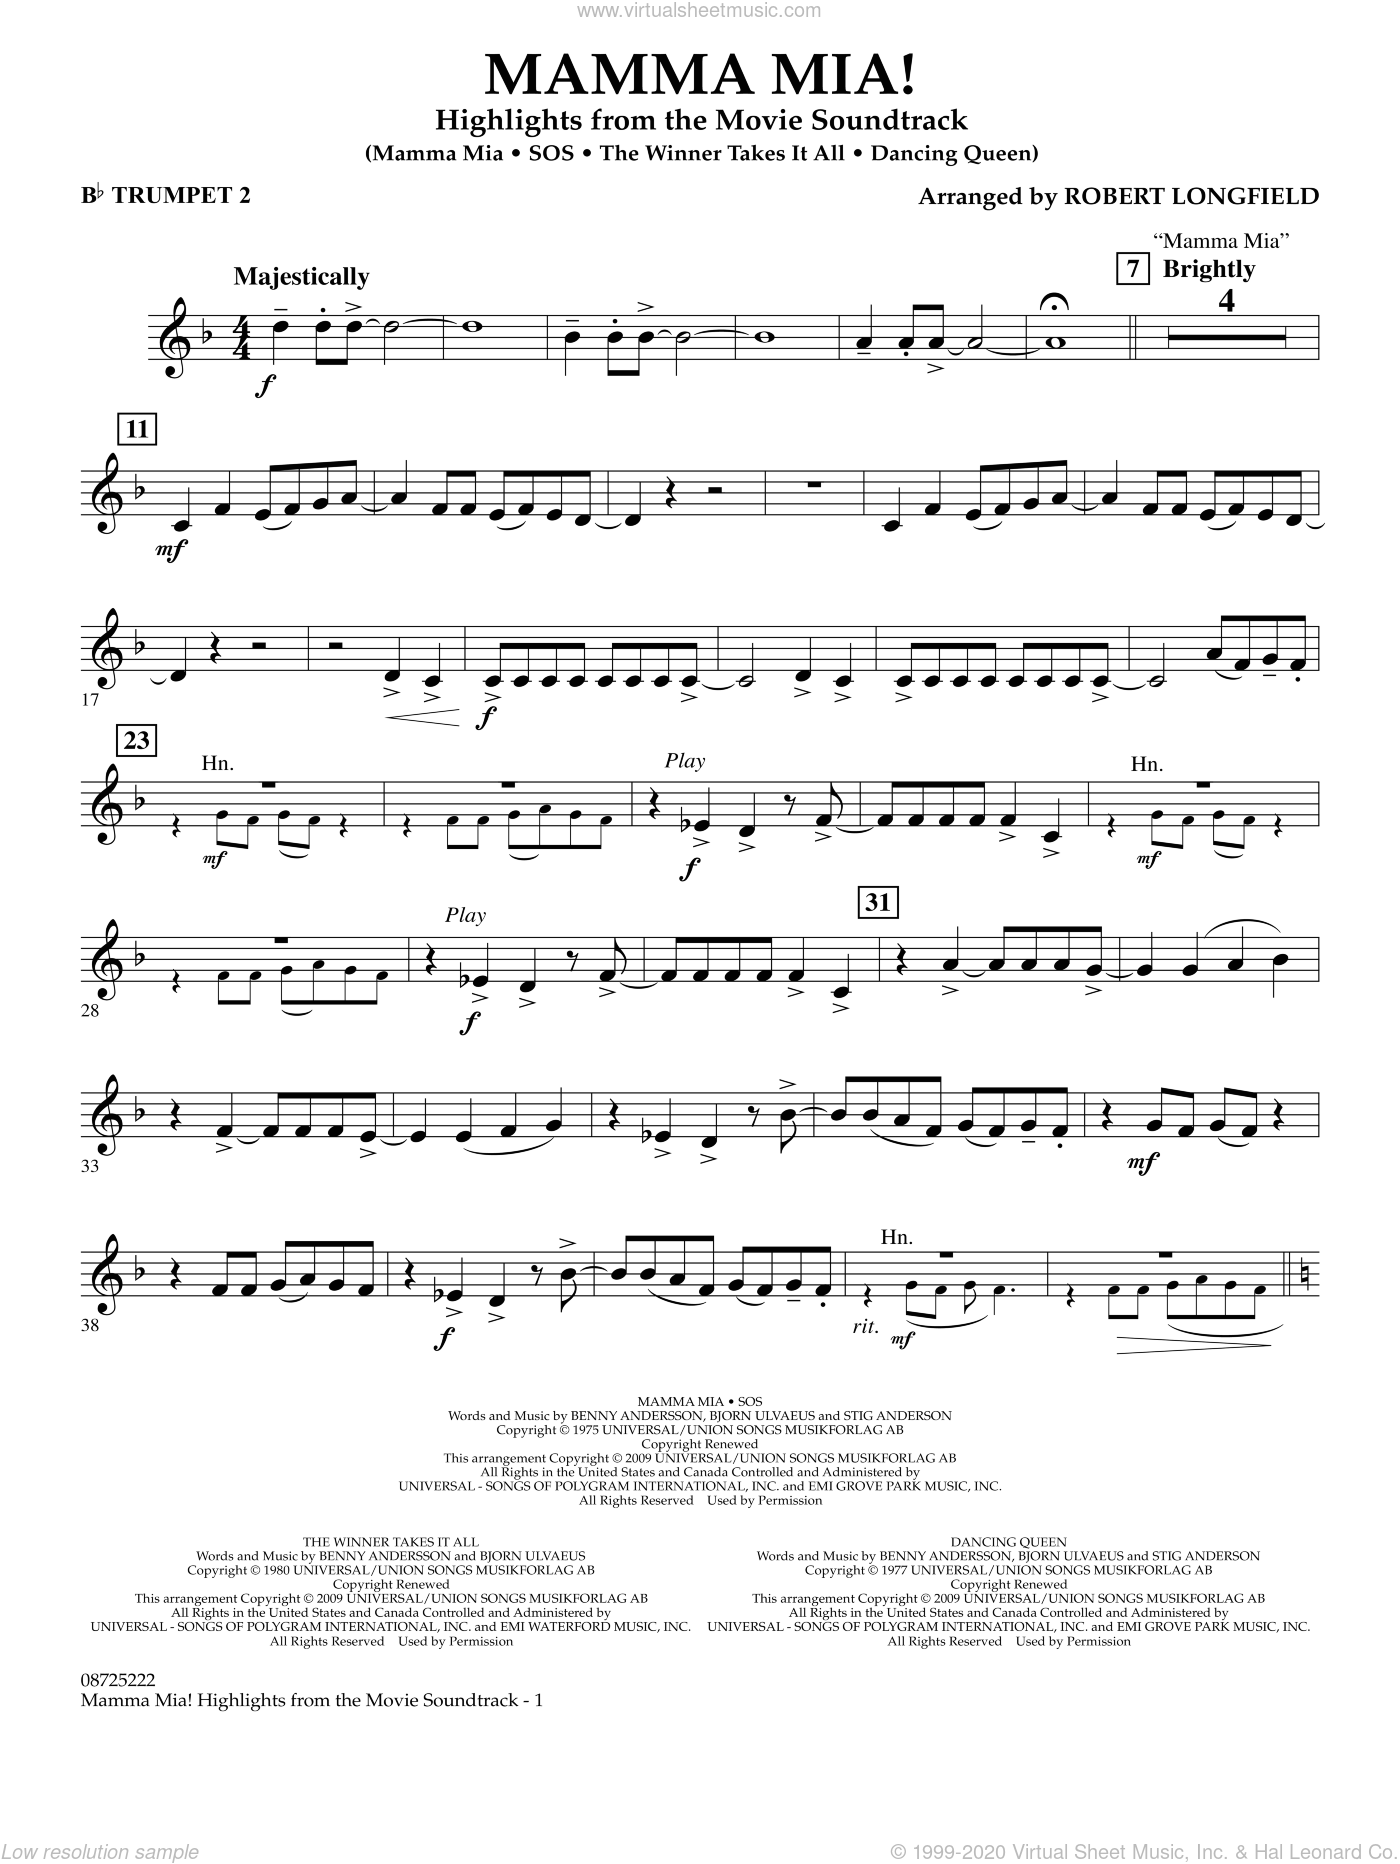 Mamma Mia!, highlights from the movie soundtrack sheet music for concert band (Bb trumpet 2) by ABBA and Robert Longfield, intermediate skill level